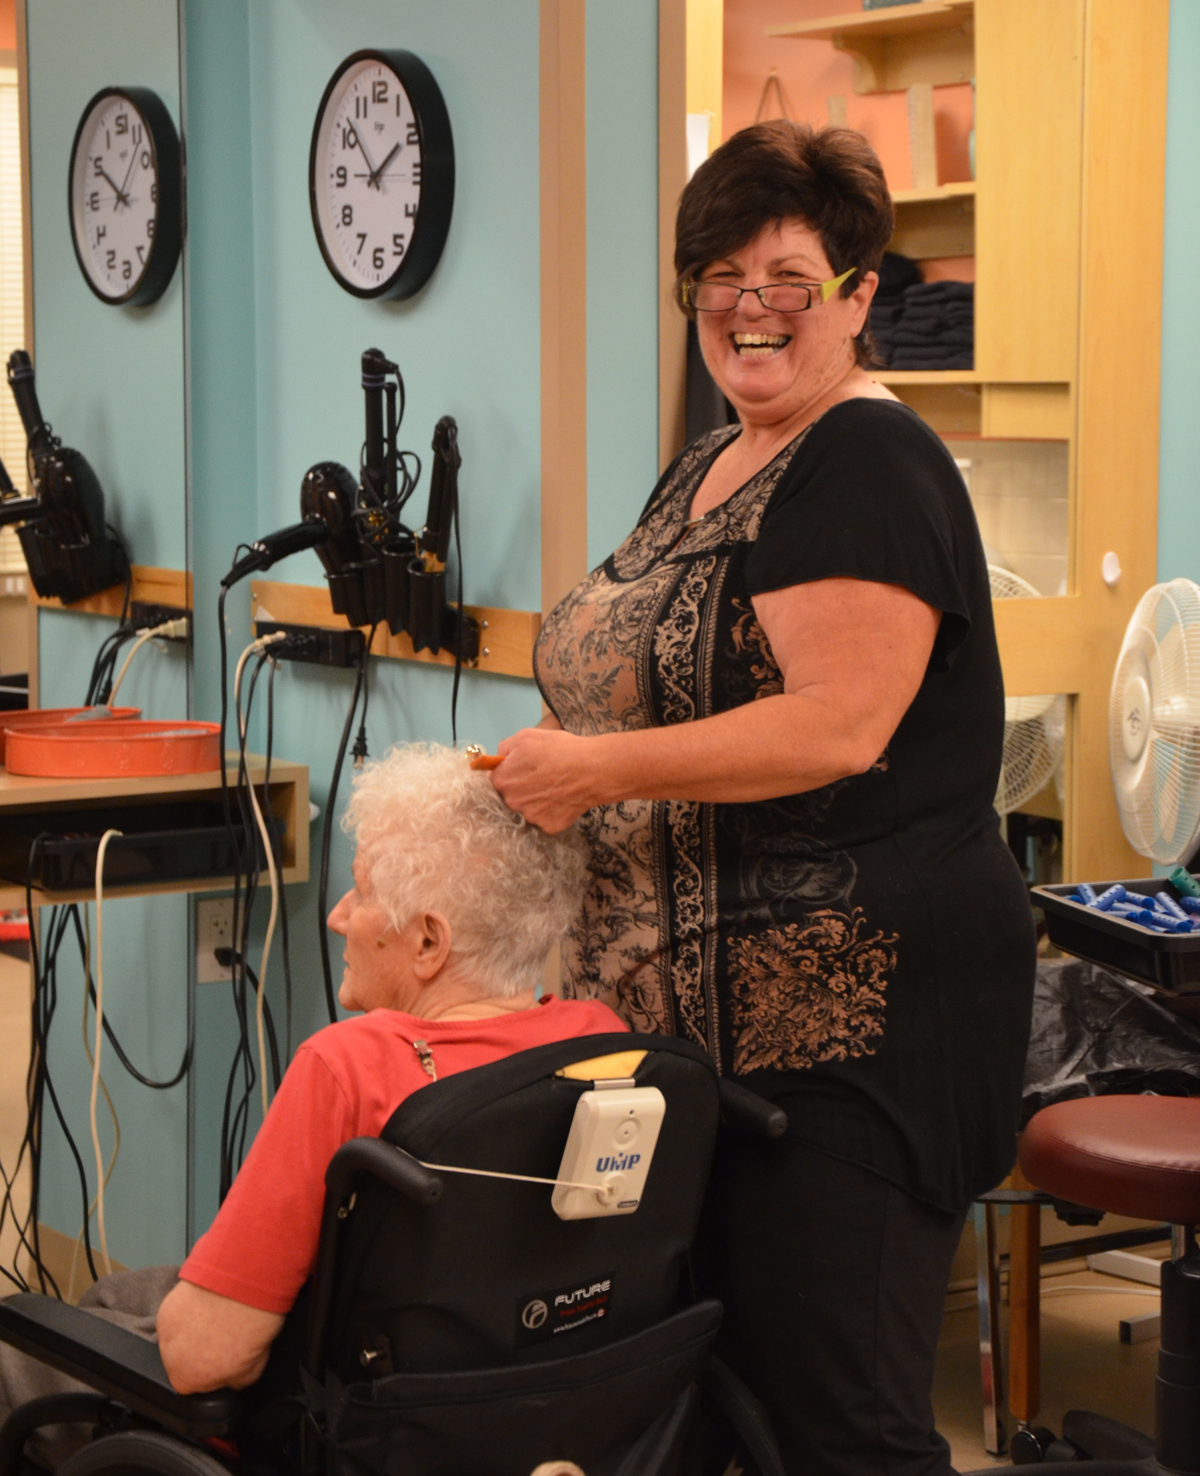 staff member doing residents hair.jpg